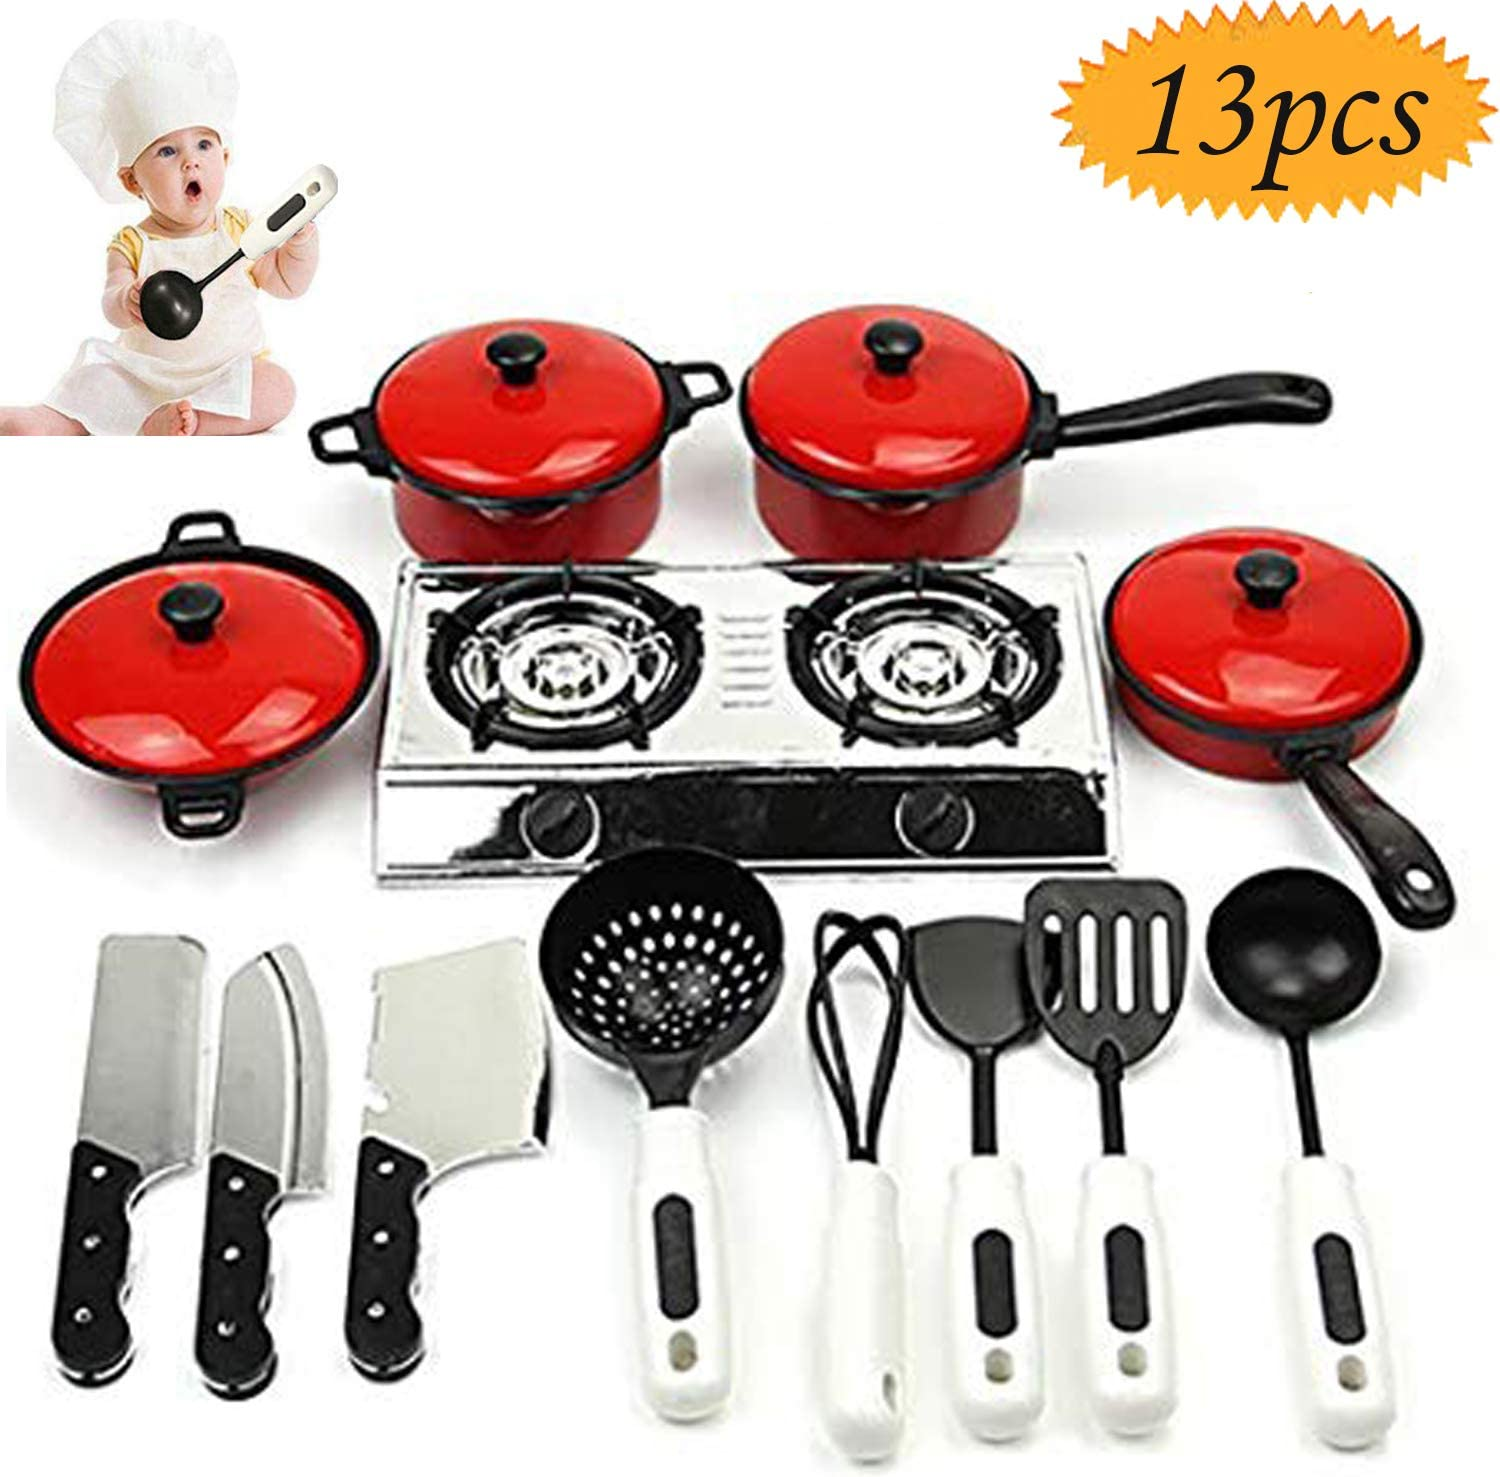 Amazon Com Grocery House Kitchen Pretend Toys 13pcs Child Cooking Toy Kids Play Kitchen Sets Home Cooking Role Play Toys Cooking Food Utensils Pans Pots Dishes Cookware Cooking Toy Gift For Kid Pretend